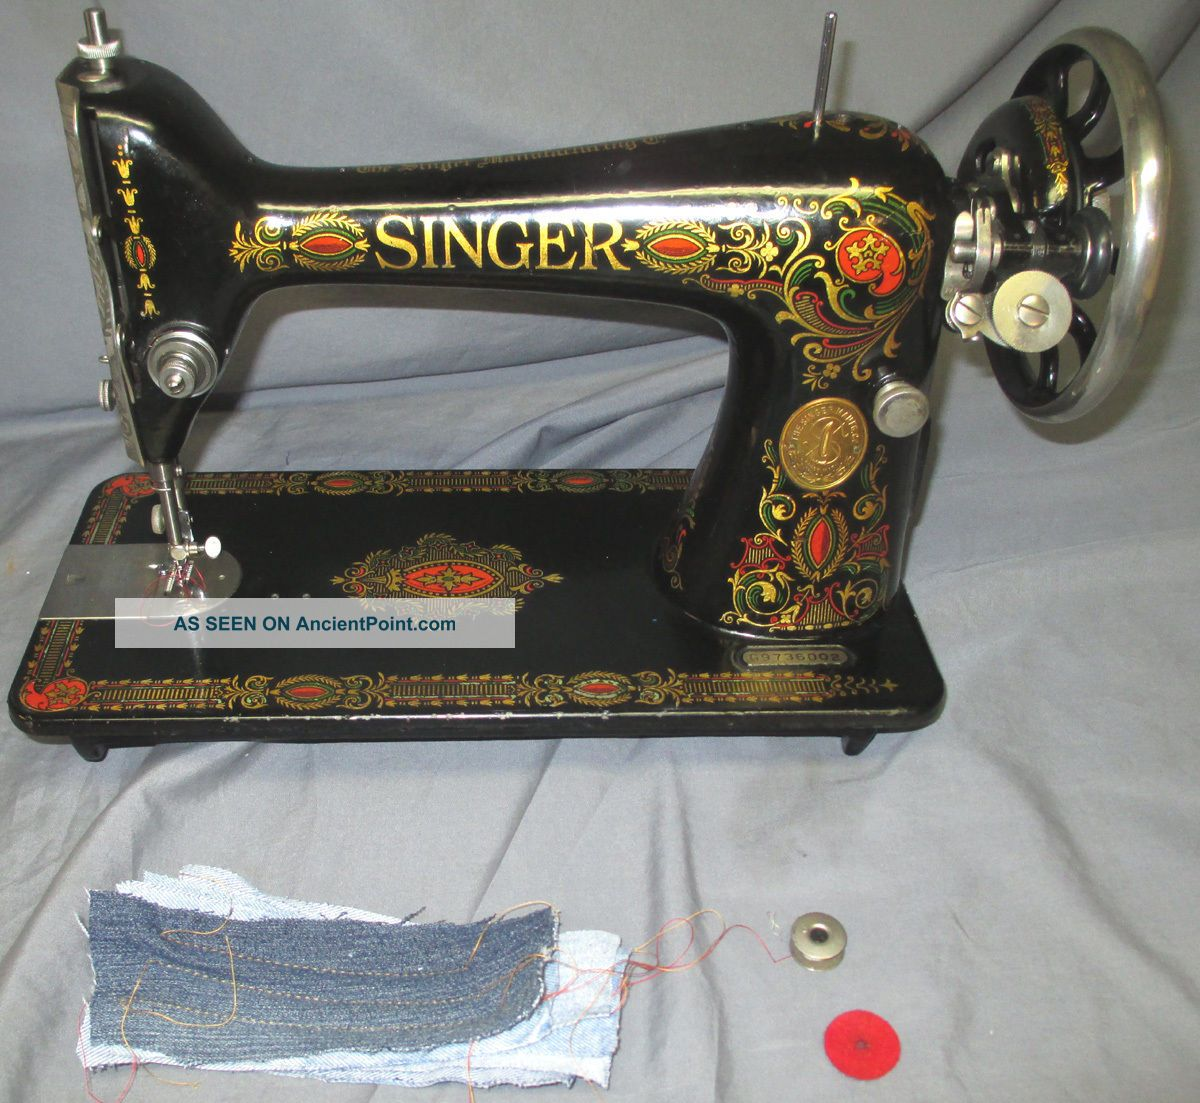 Shiny Serviced Antique 1923 Singer 66 Red Eye Treadle Sewing Machine Video Sewing Machines photo